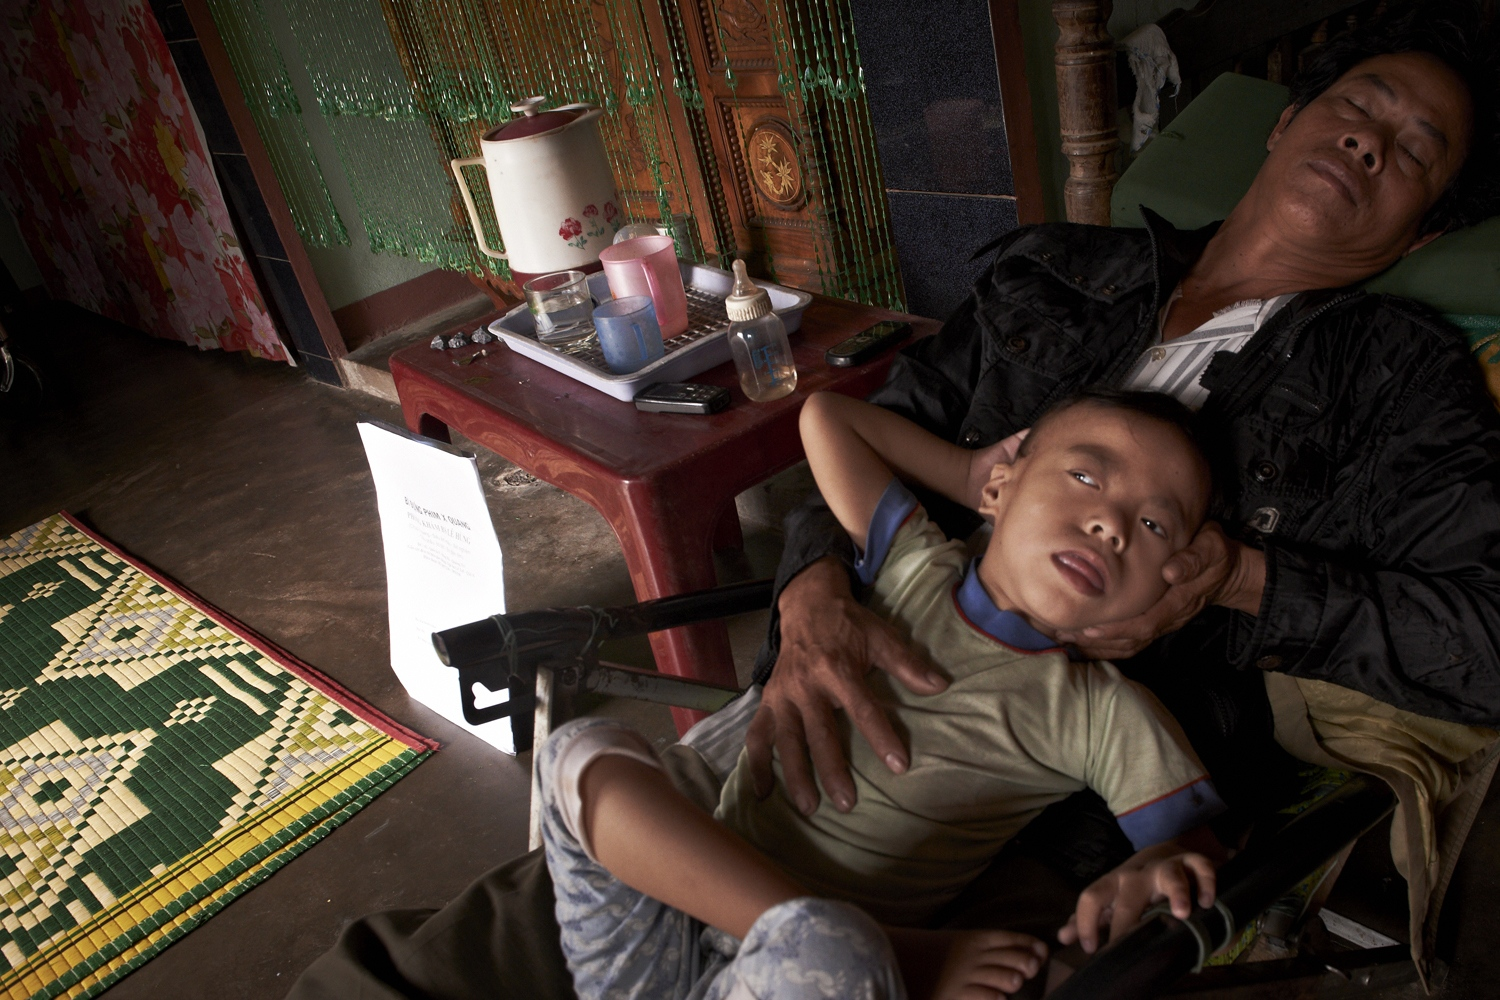 Tran Thi Thuy Linh's (Female, age 6) father was never in the War but had worked in an area contaminated by the chemical for well over ten years. He no longer works, due to undiagnosed nervous system illnesses that prevented him from working. The daughter suffers from brain lesions. Of recent, they have been determined as victims of the Agent Orange by VAVA (Vietnam Union of Friendship Organization). The Agent Orange gets its alias, Slow Bullet, for its gradual surfacing of effects, unlike the explosives with immediate results. (Dec. 4, 2012)